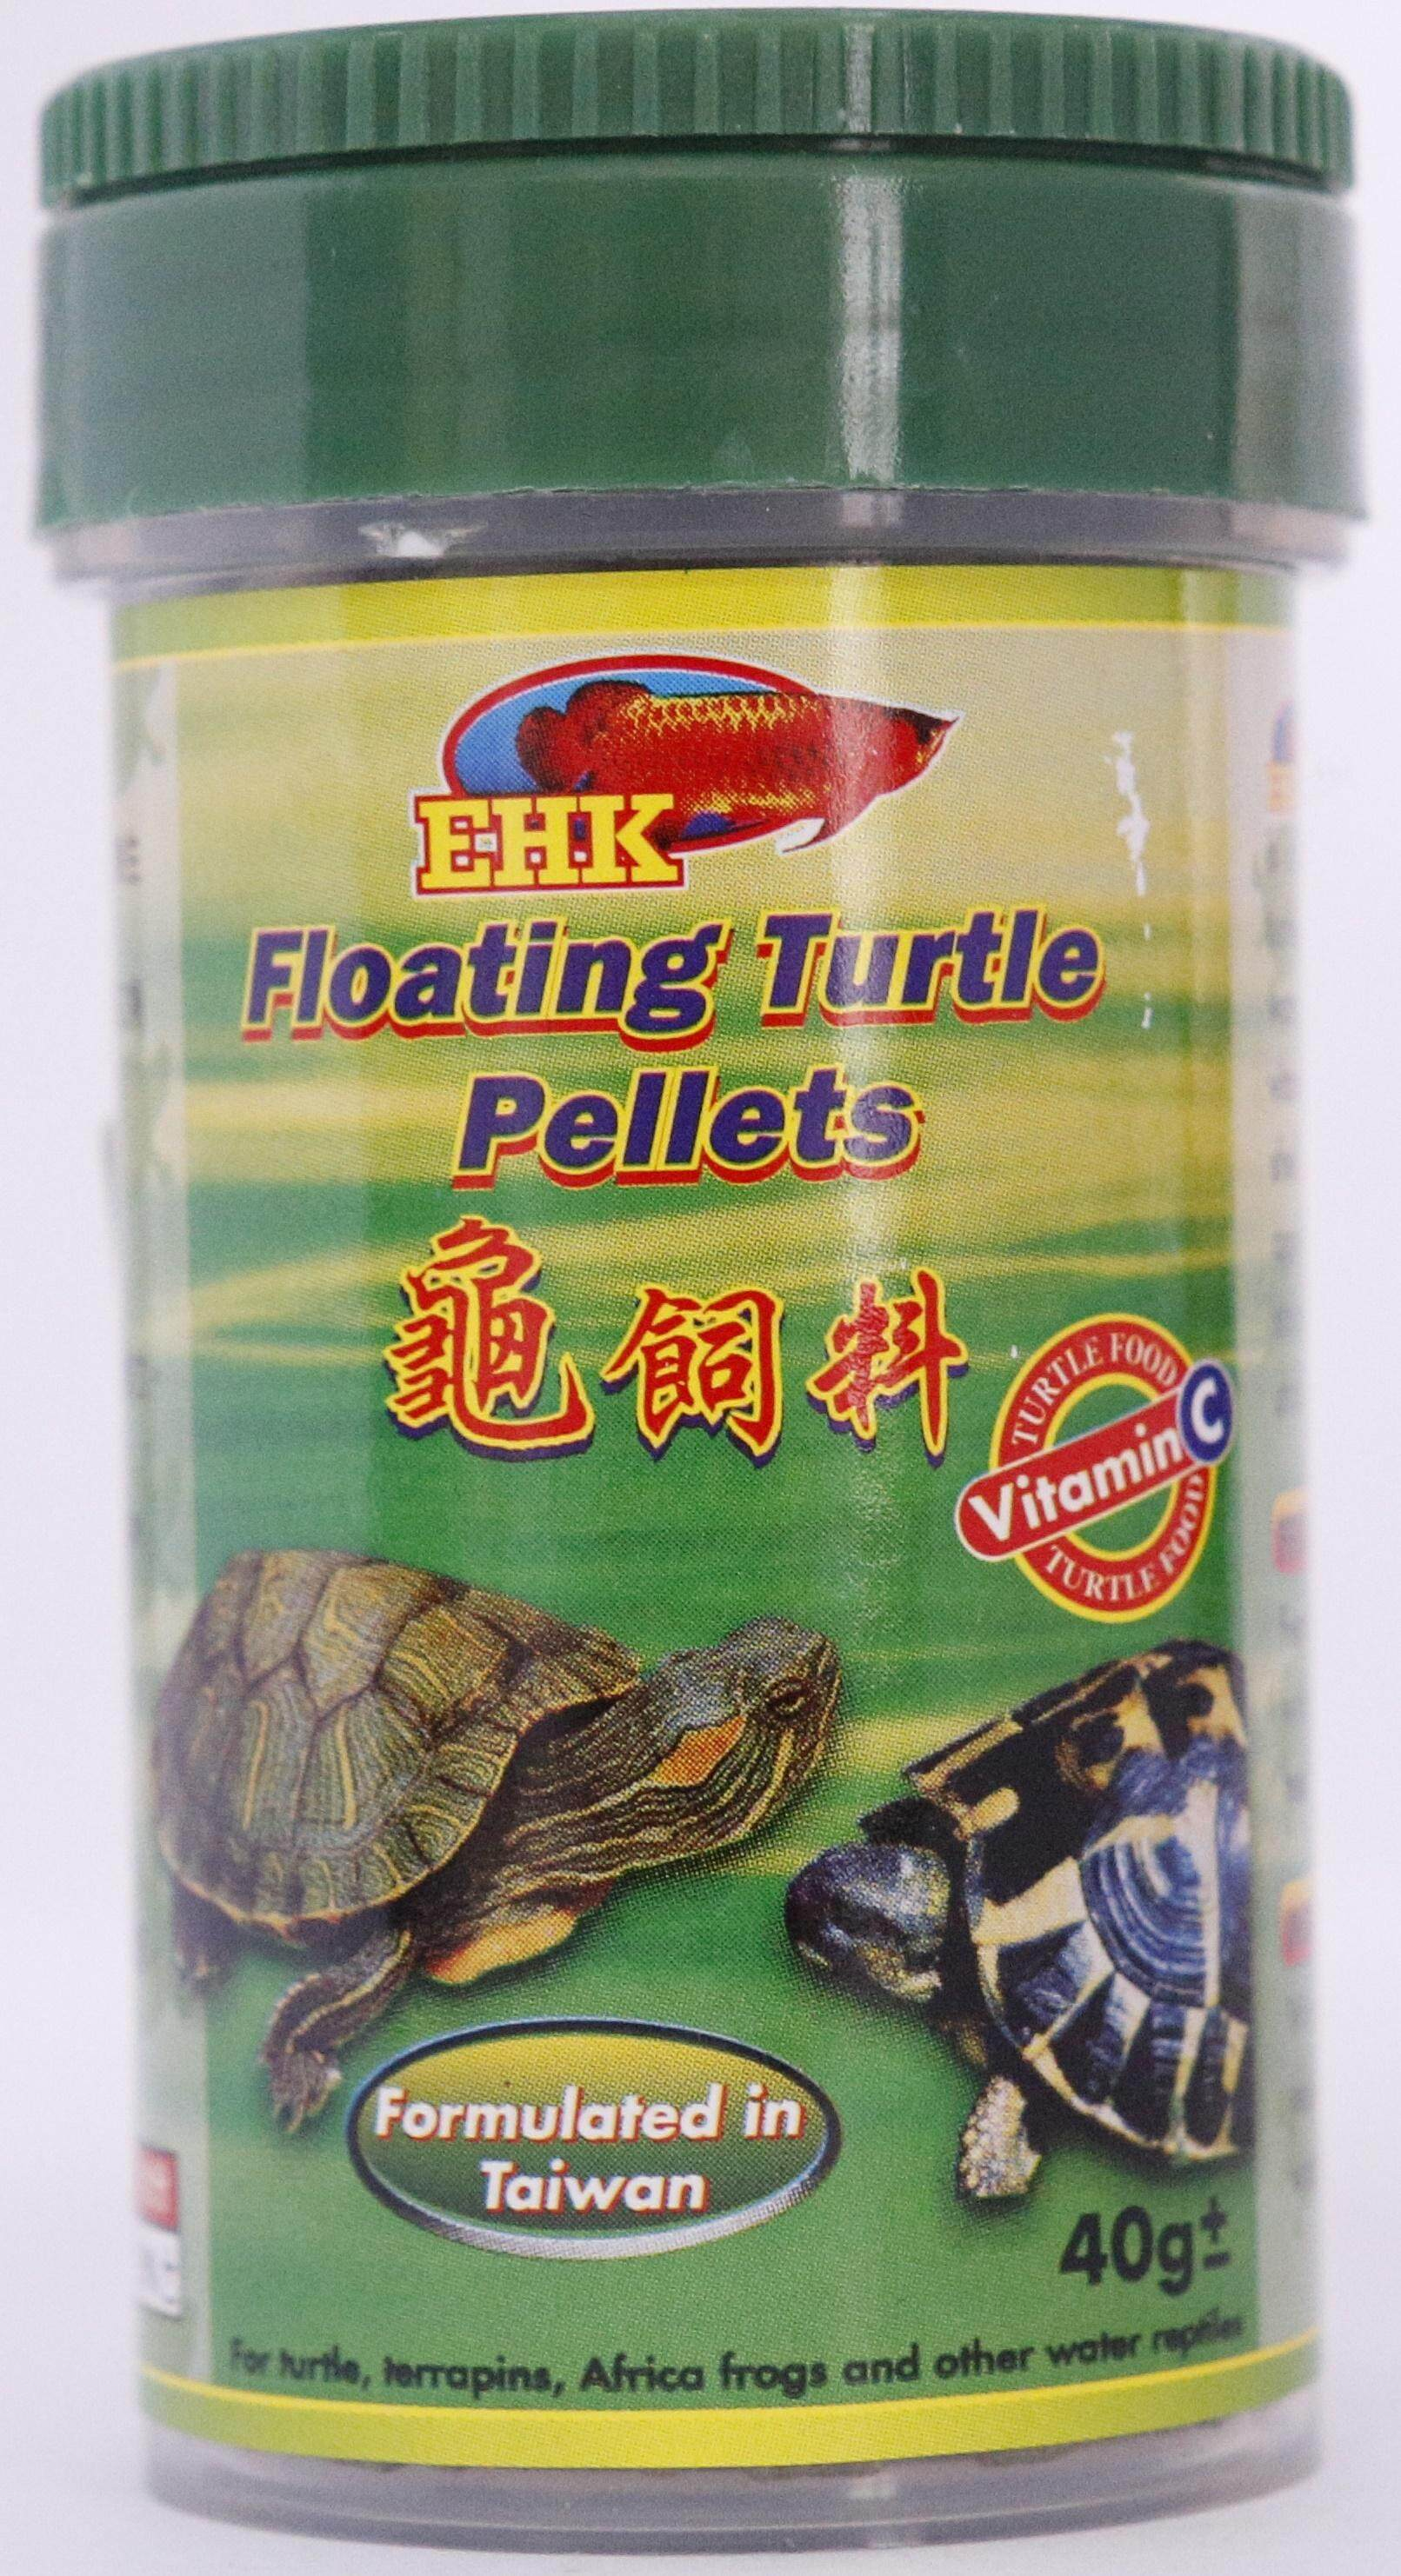 EHK / BETTAS Floating Turtle Pellets 40gm  - Turtle Food